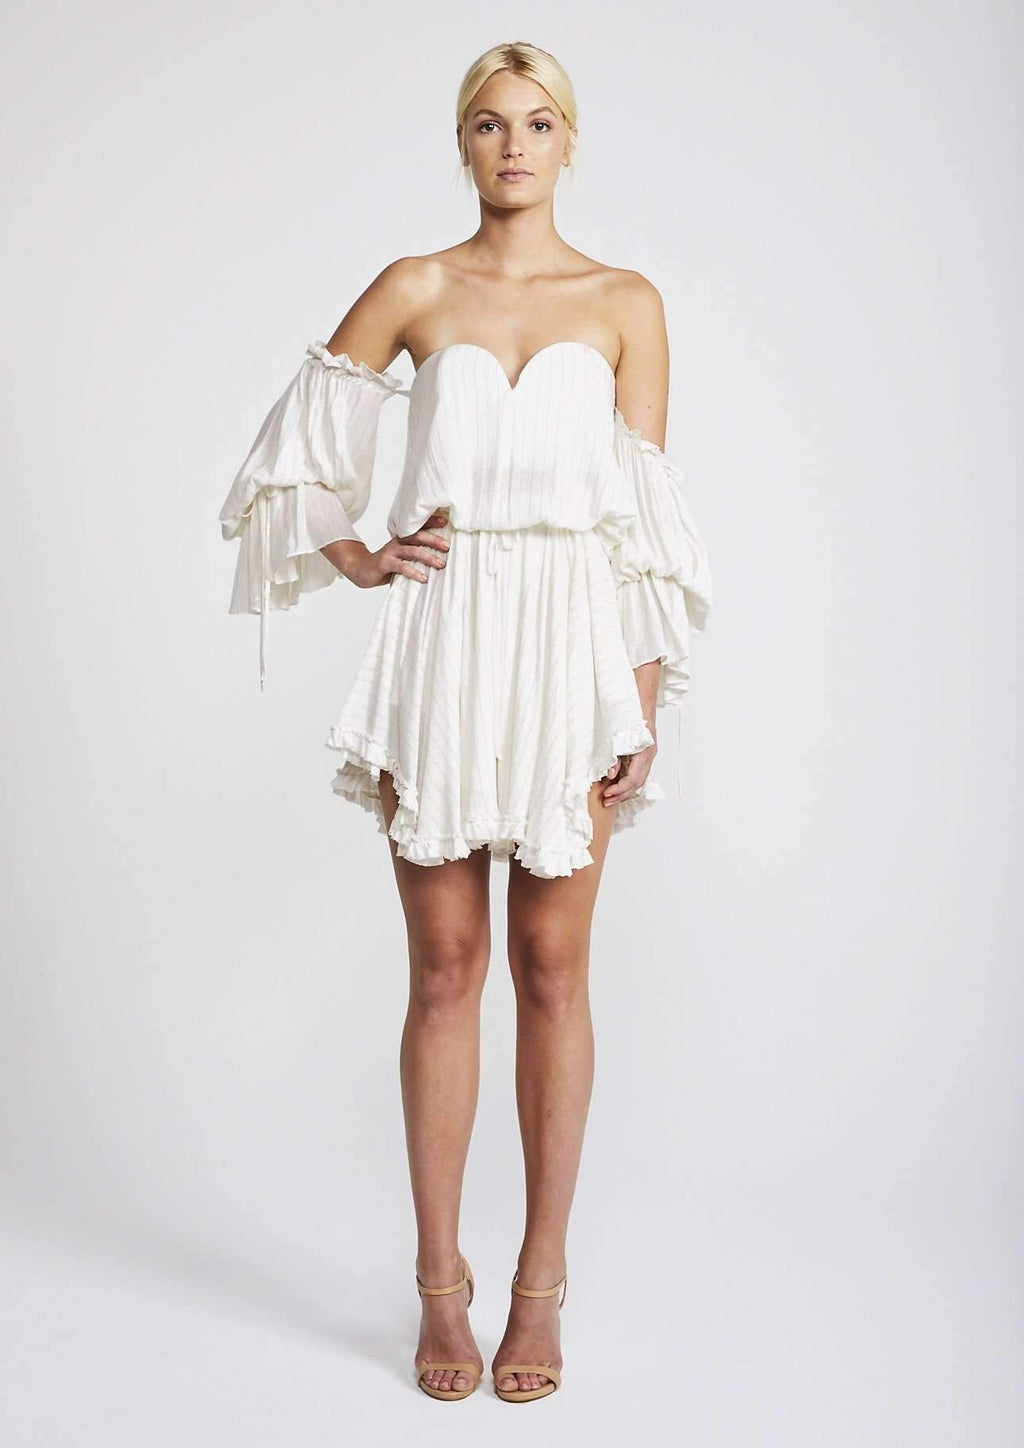 Shona Joy Dazed Bustier Mini Dress WHITE/GOLD